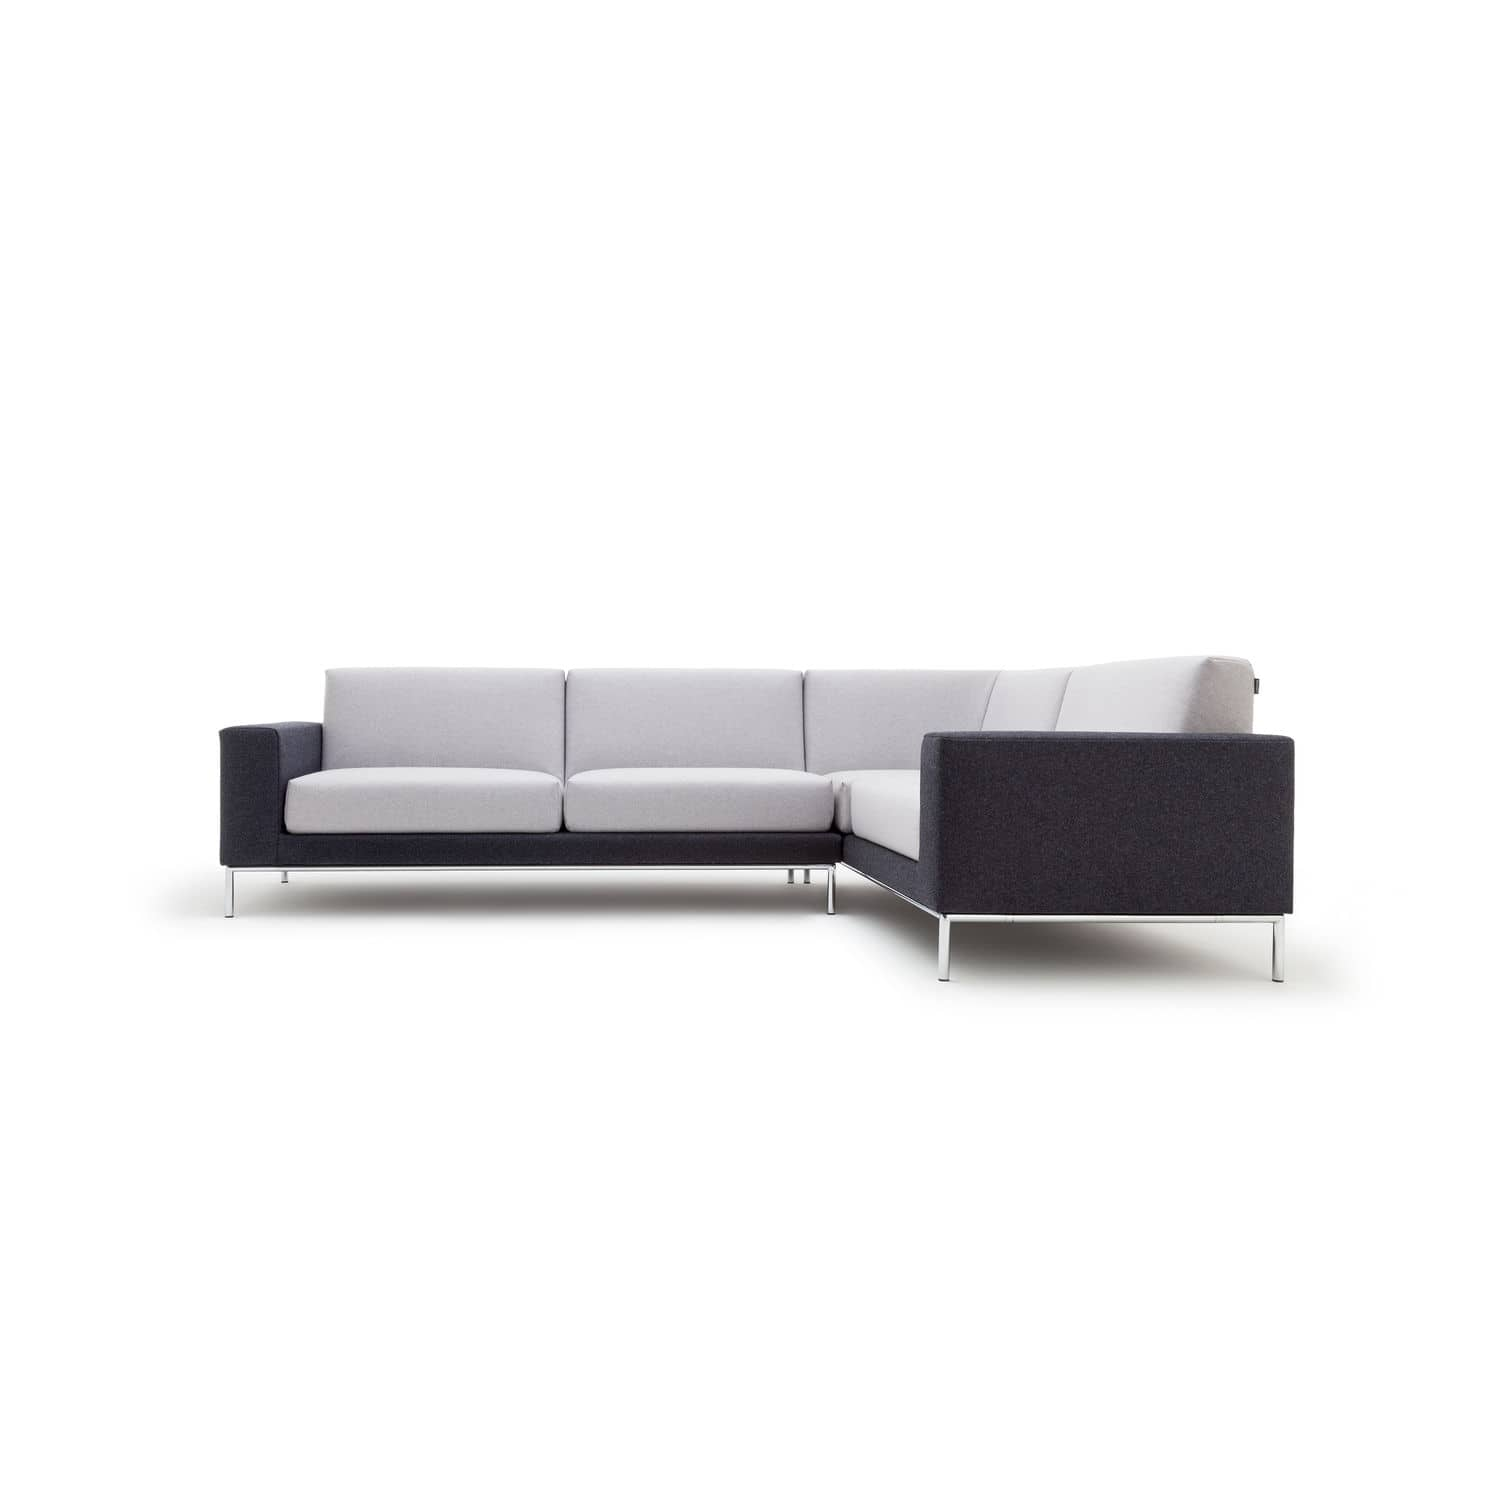 Freistil Sofa Modular Sofa - 183 - Freistil - Contemporary / Fabric / 4-seater